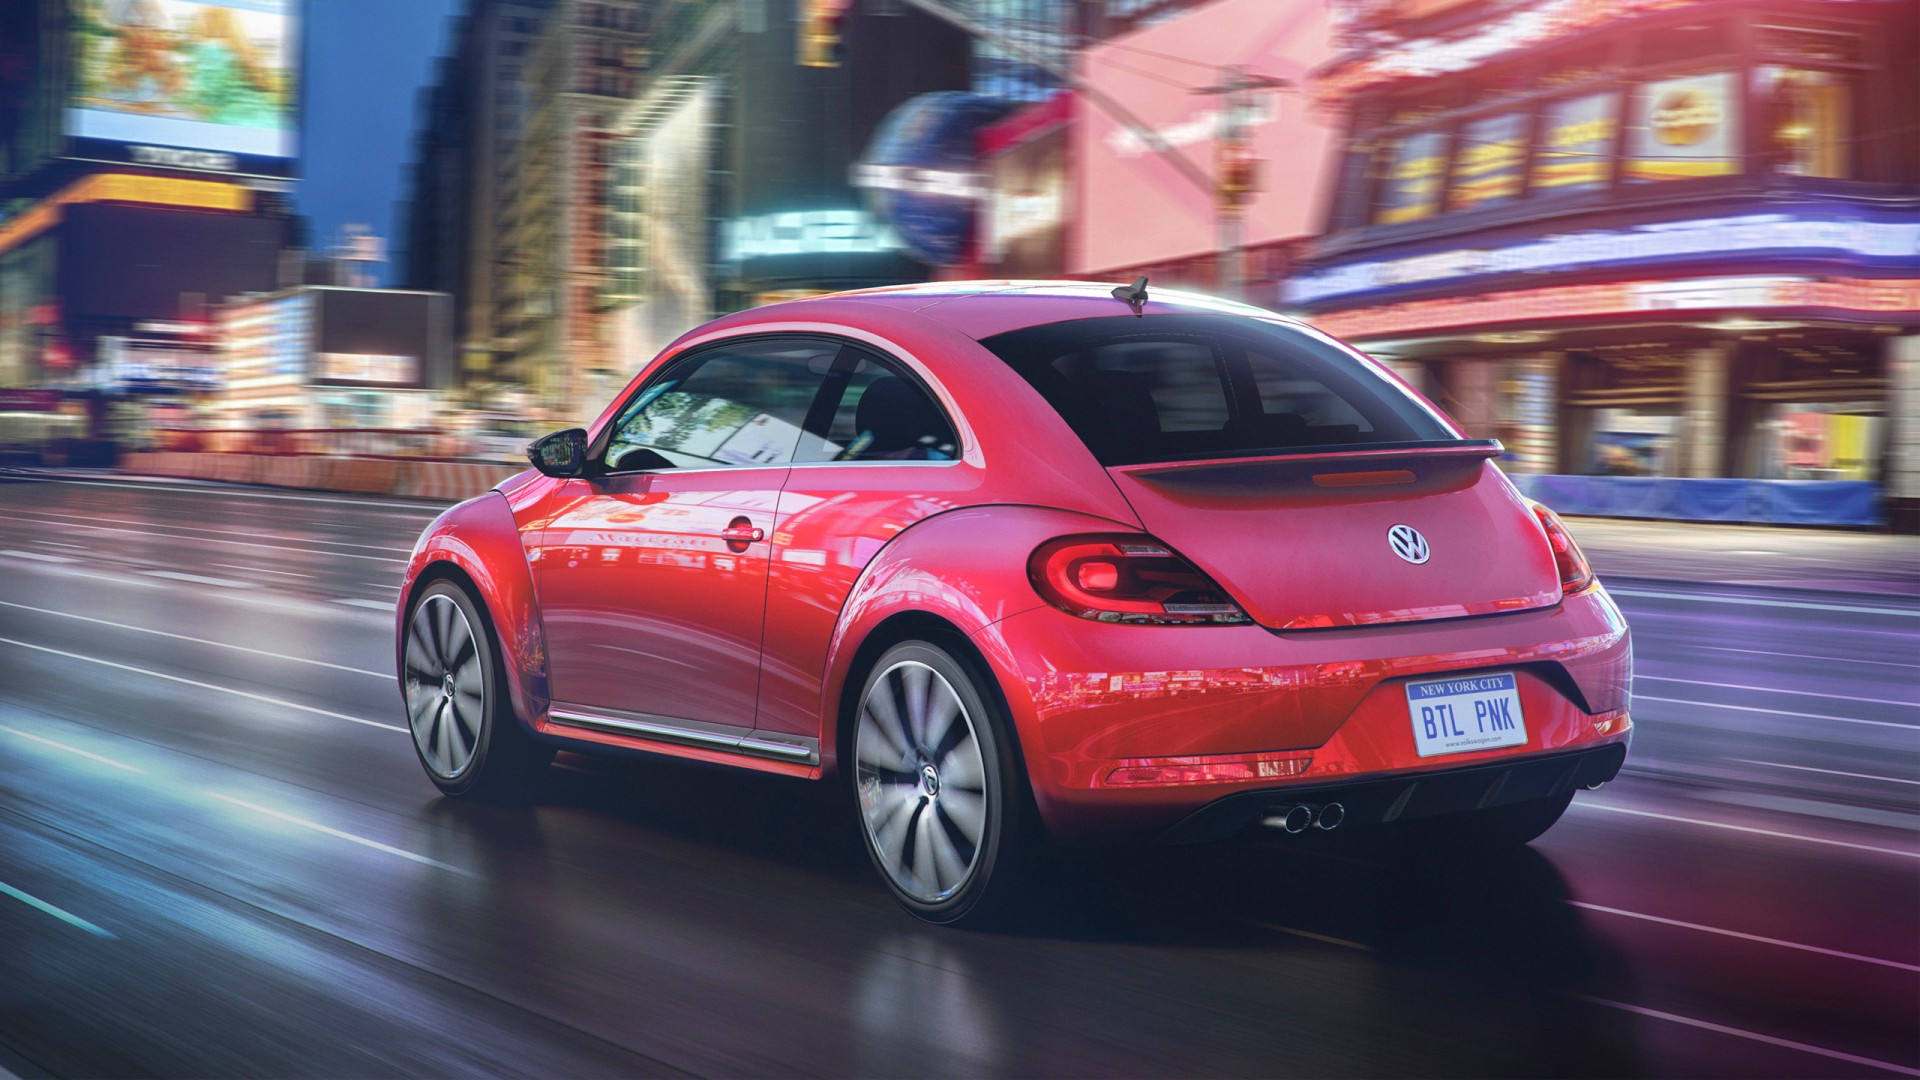 volkswagen pink beetle limited edition  wallpaper hd car wallpapers id